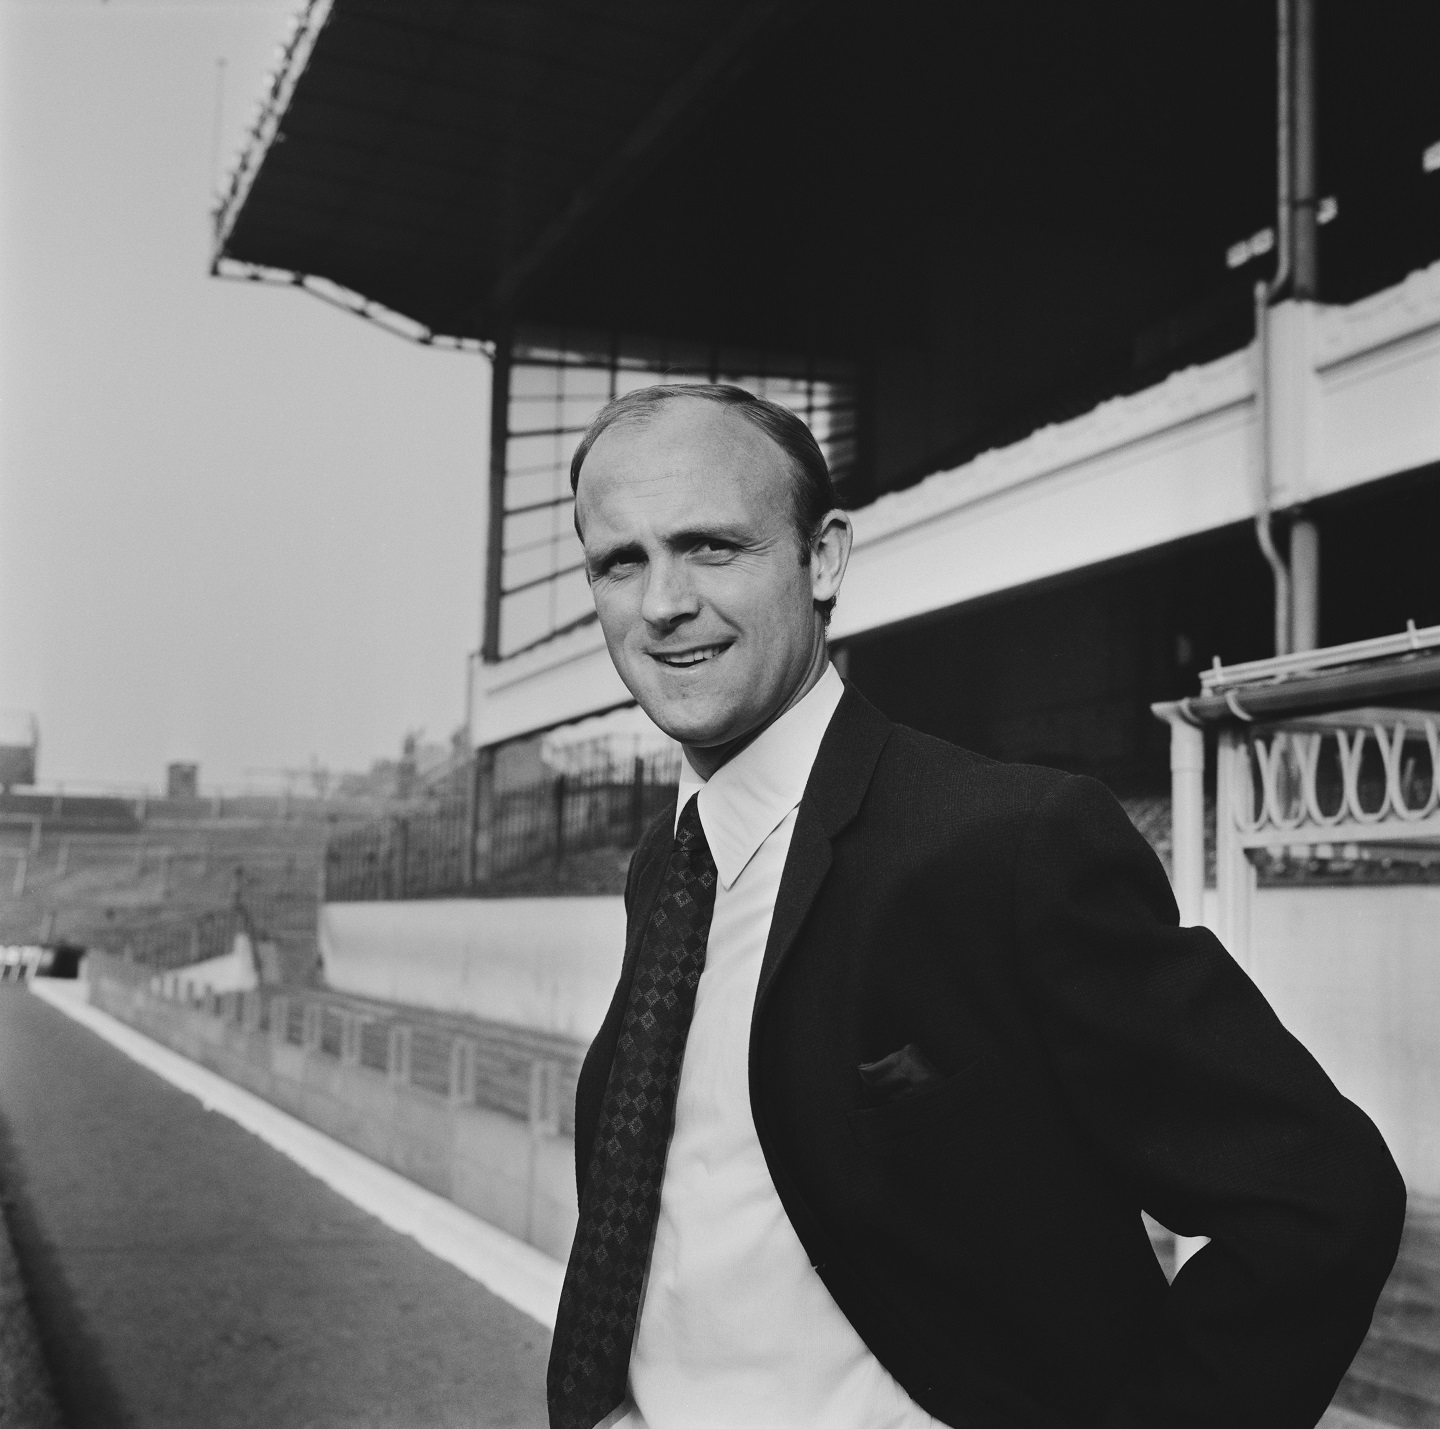 English former footballer and team coach of Arsenal Football Club, Don Howe (1935-2015) pictured standing beside the pitch at the club's Highbury Stadium in North London on 14th December 1970. (Photo by Dove/Daily Express/Hulton Archive/Getty Images)